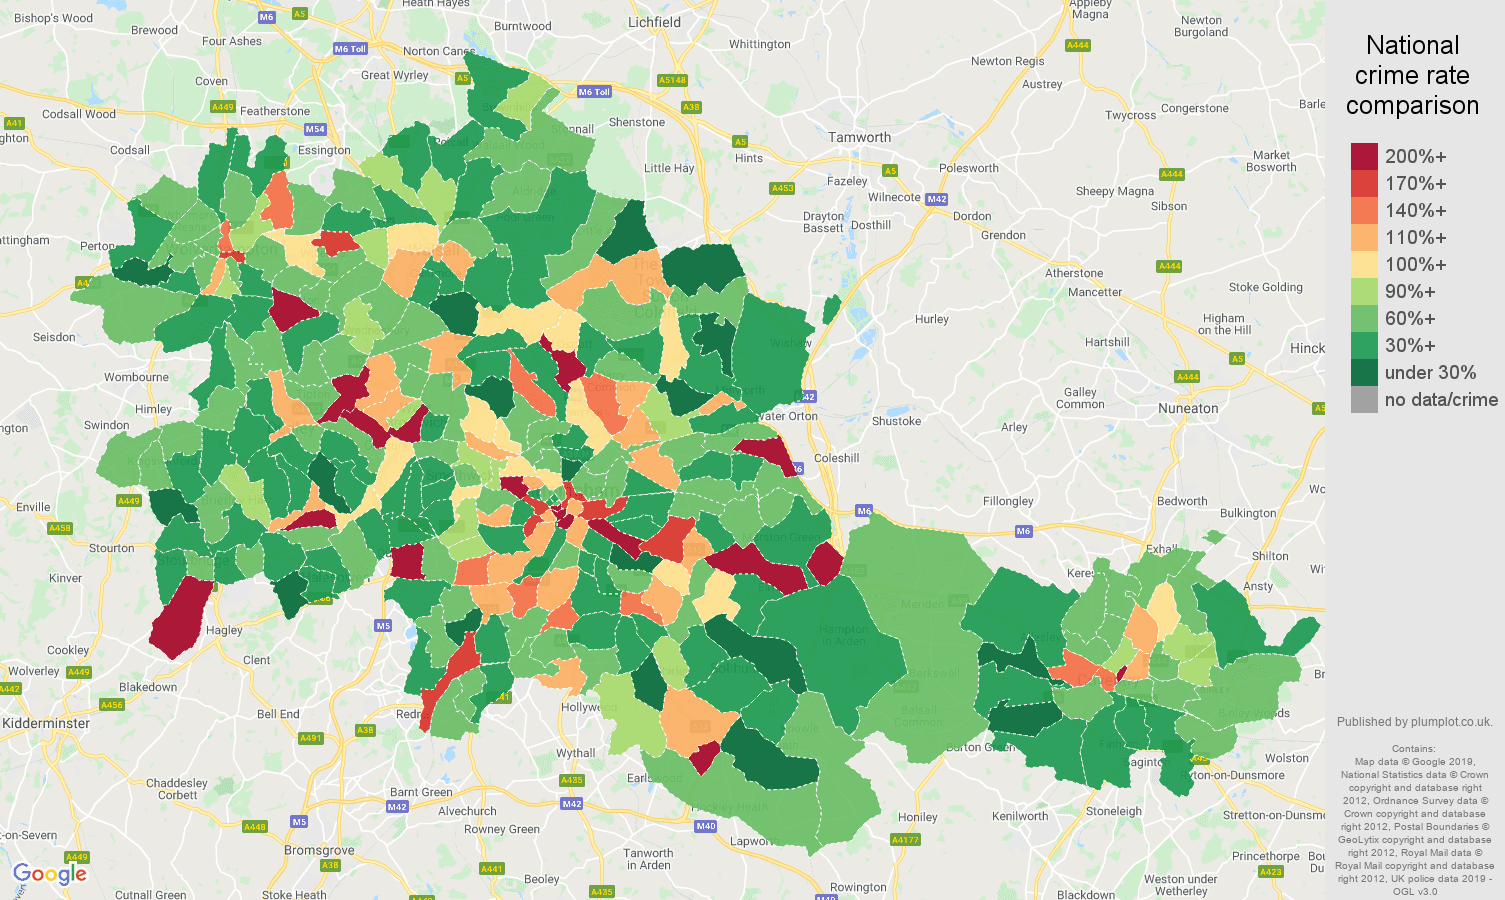 West Midlands county other theft crime rate comparison map